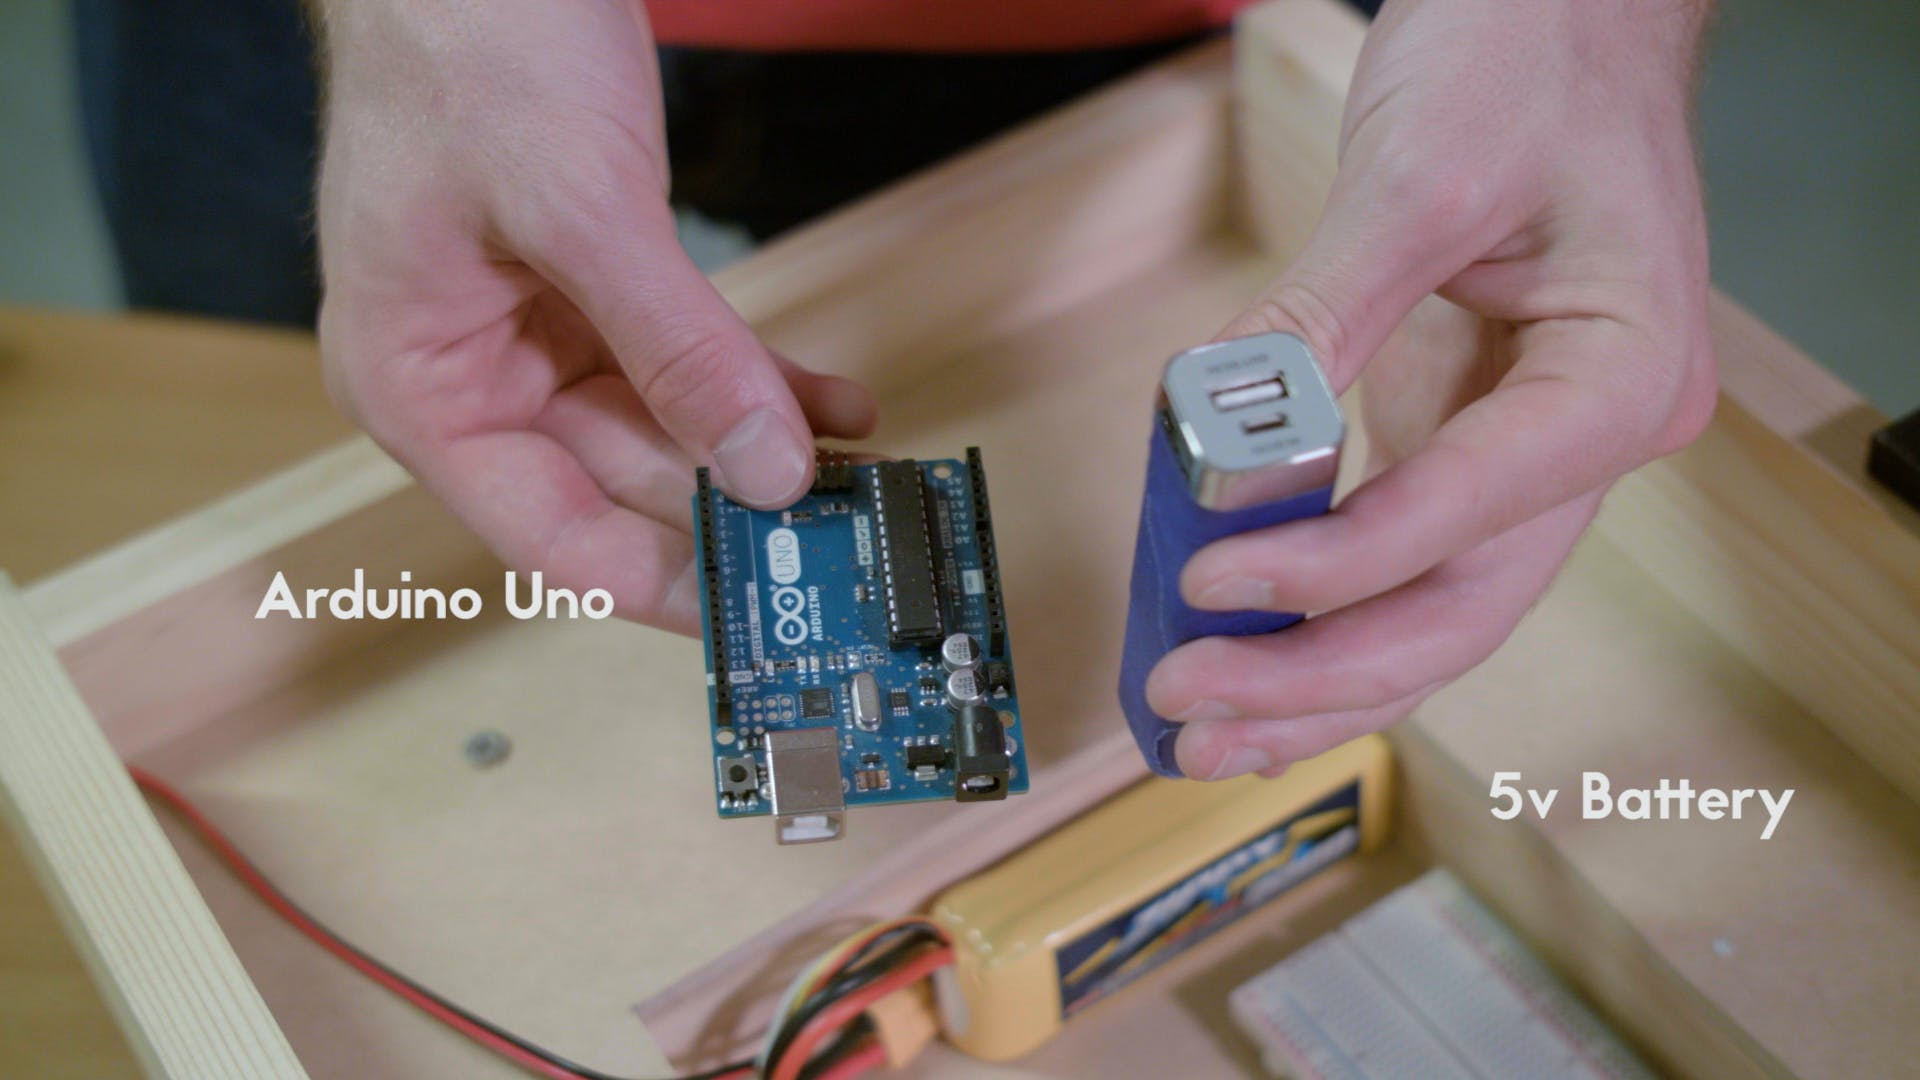 Arduino Uno and 5v Battery